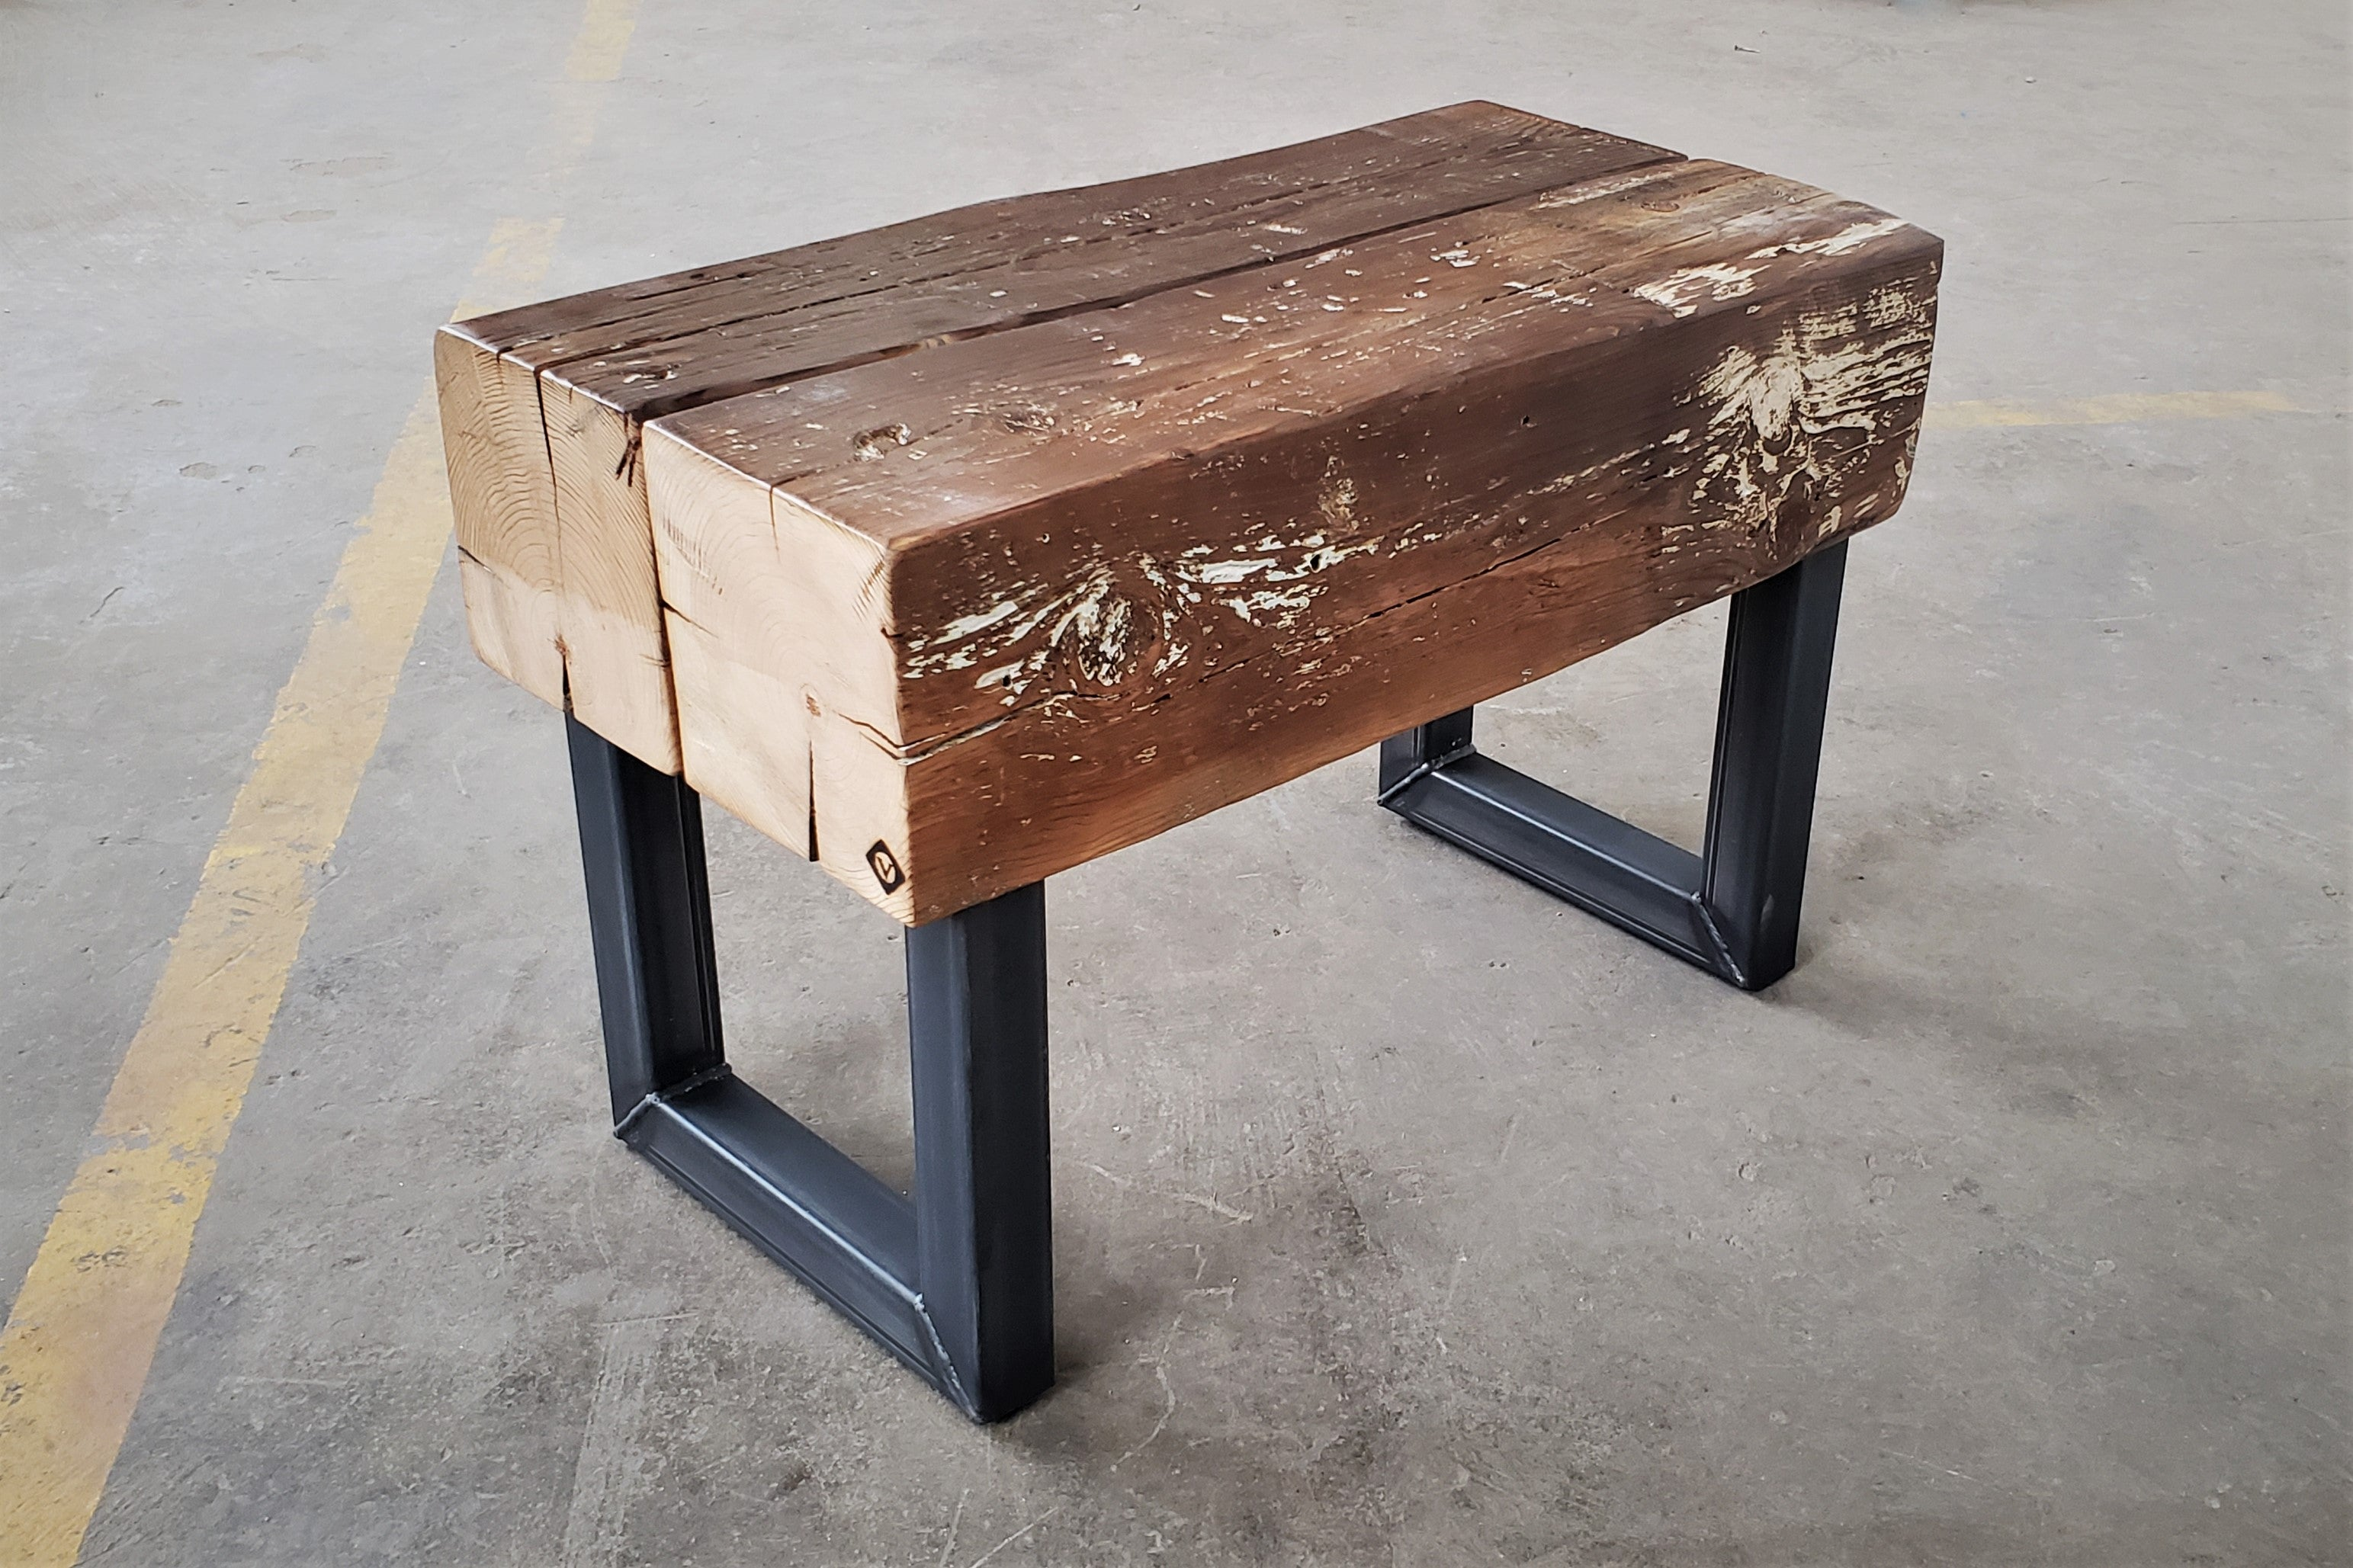 reclaimed+wood+bench_rustic+table_reclaimed+wood+table_beam+table_cabin+furniture_vault+furniture